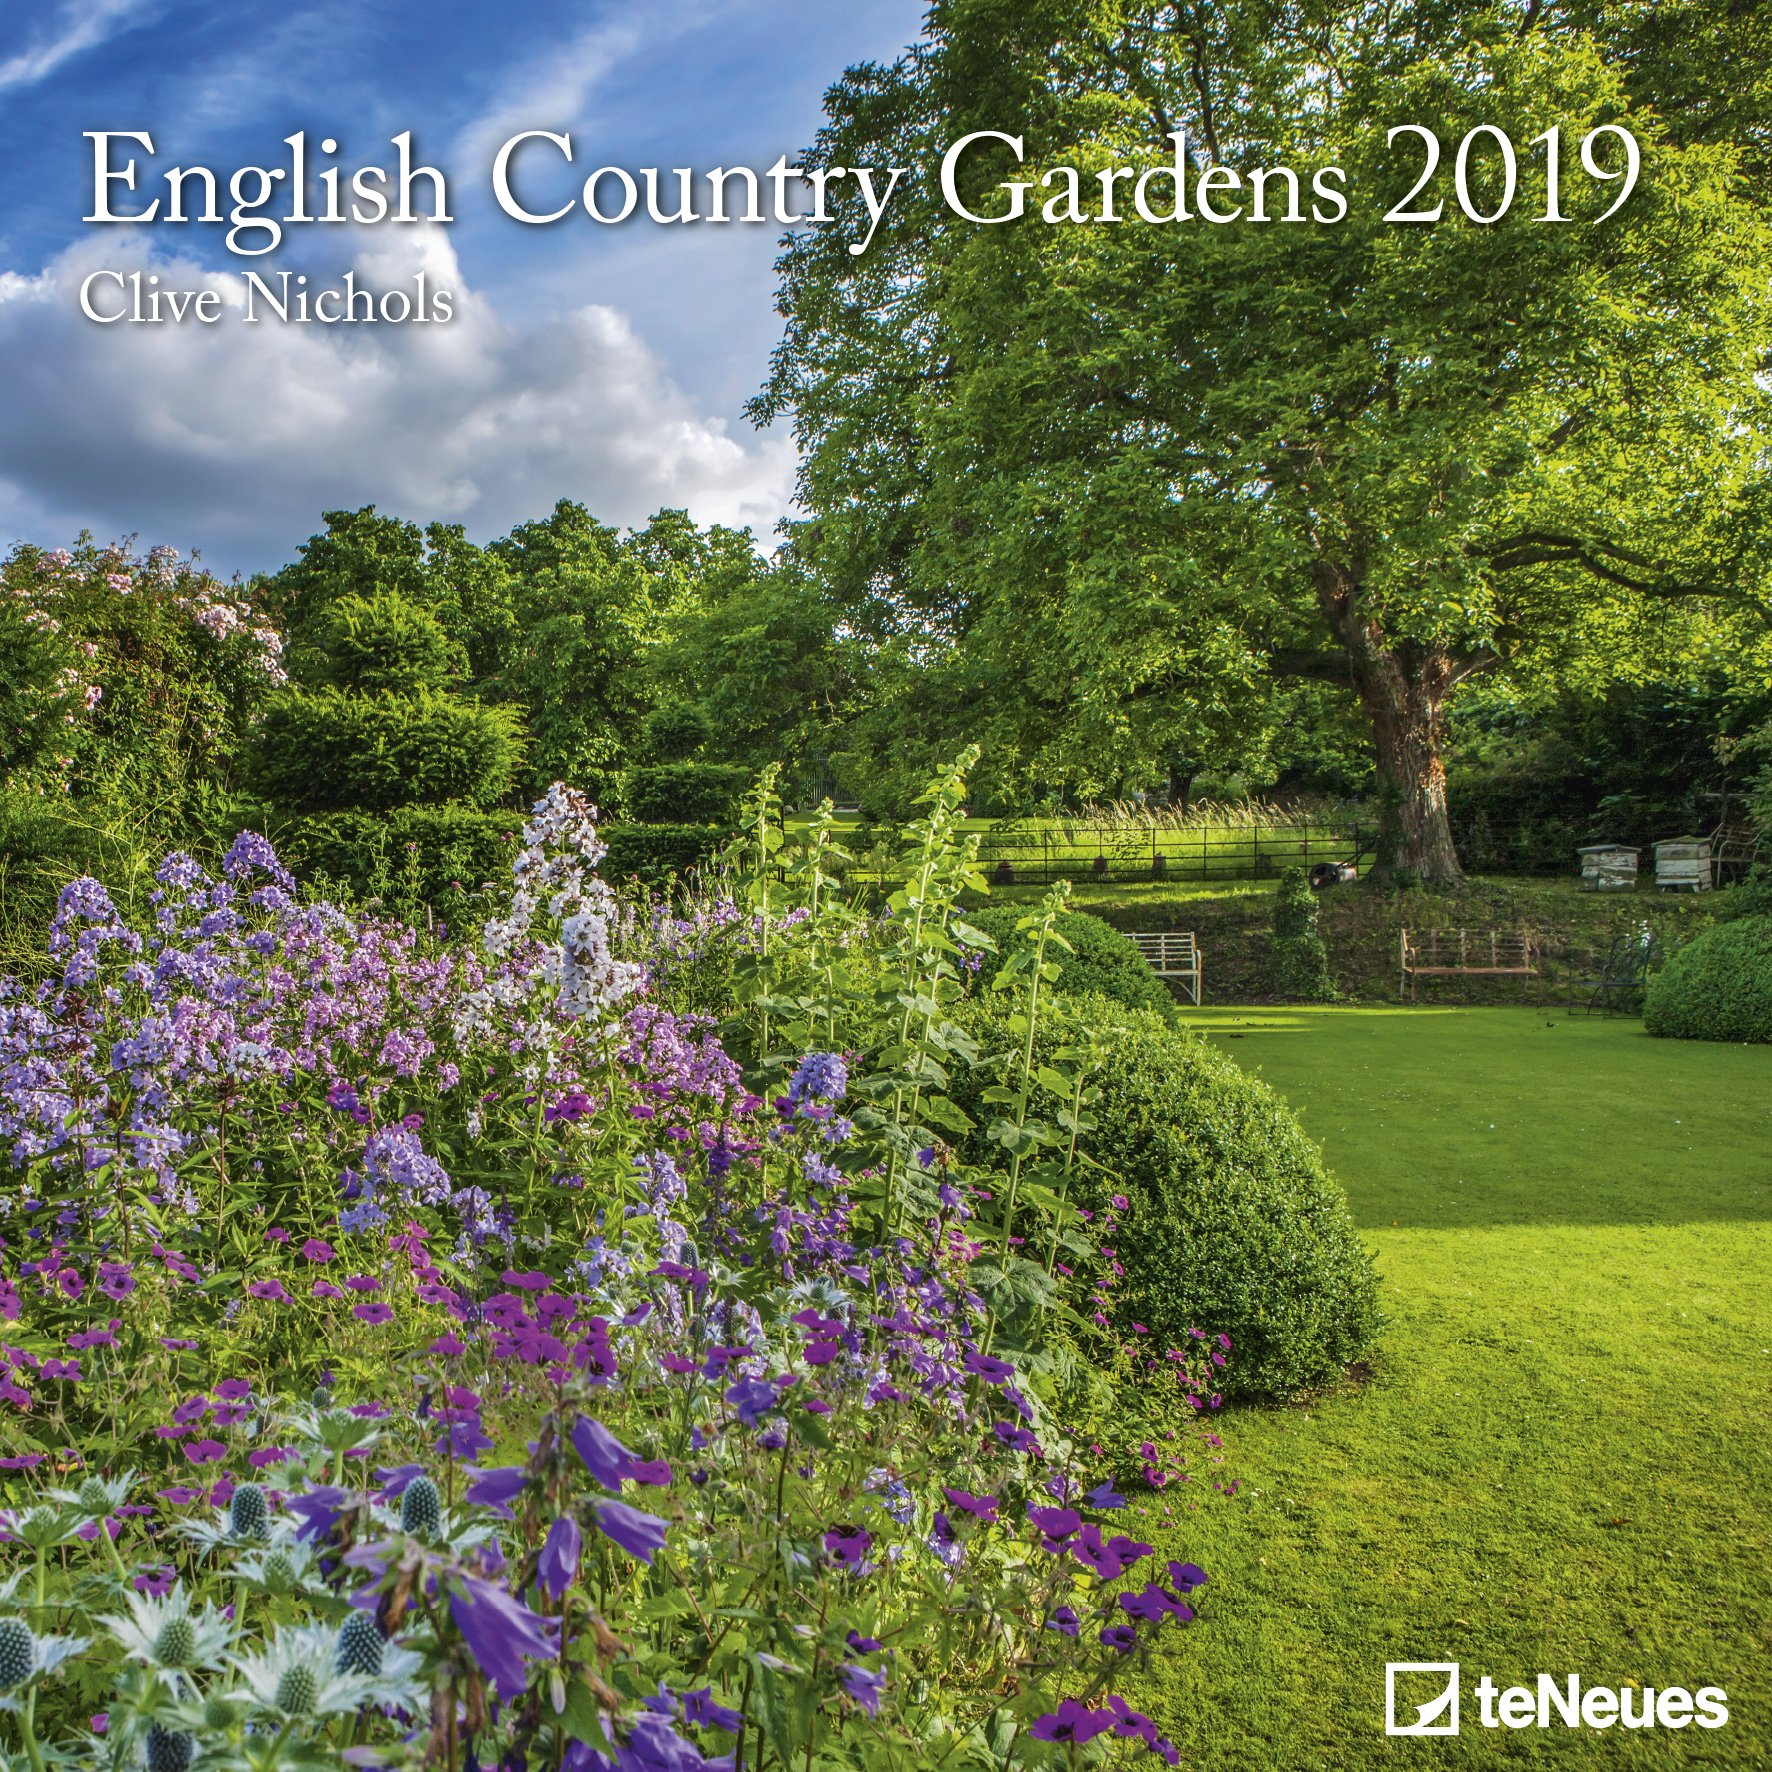 2019 English Country Gardens Calendar Photography Calendar 30 X 30 Cm Wall Calendar English German French Italian And Spanish Edition Teneues Calendars Stationery 4002725957764 Amazon Com Books